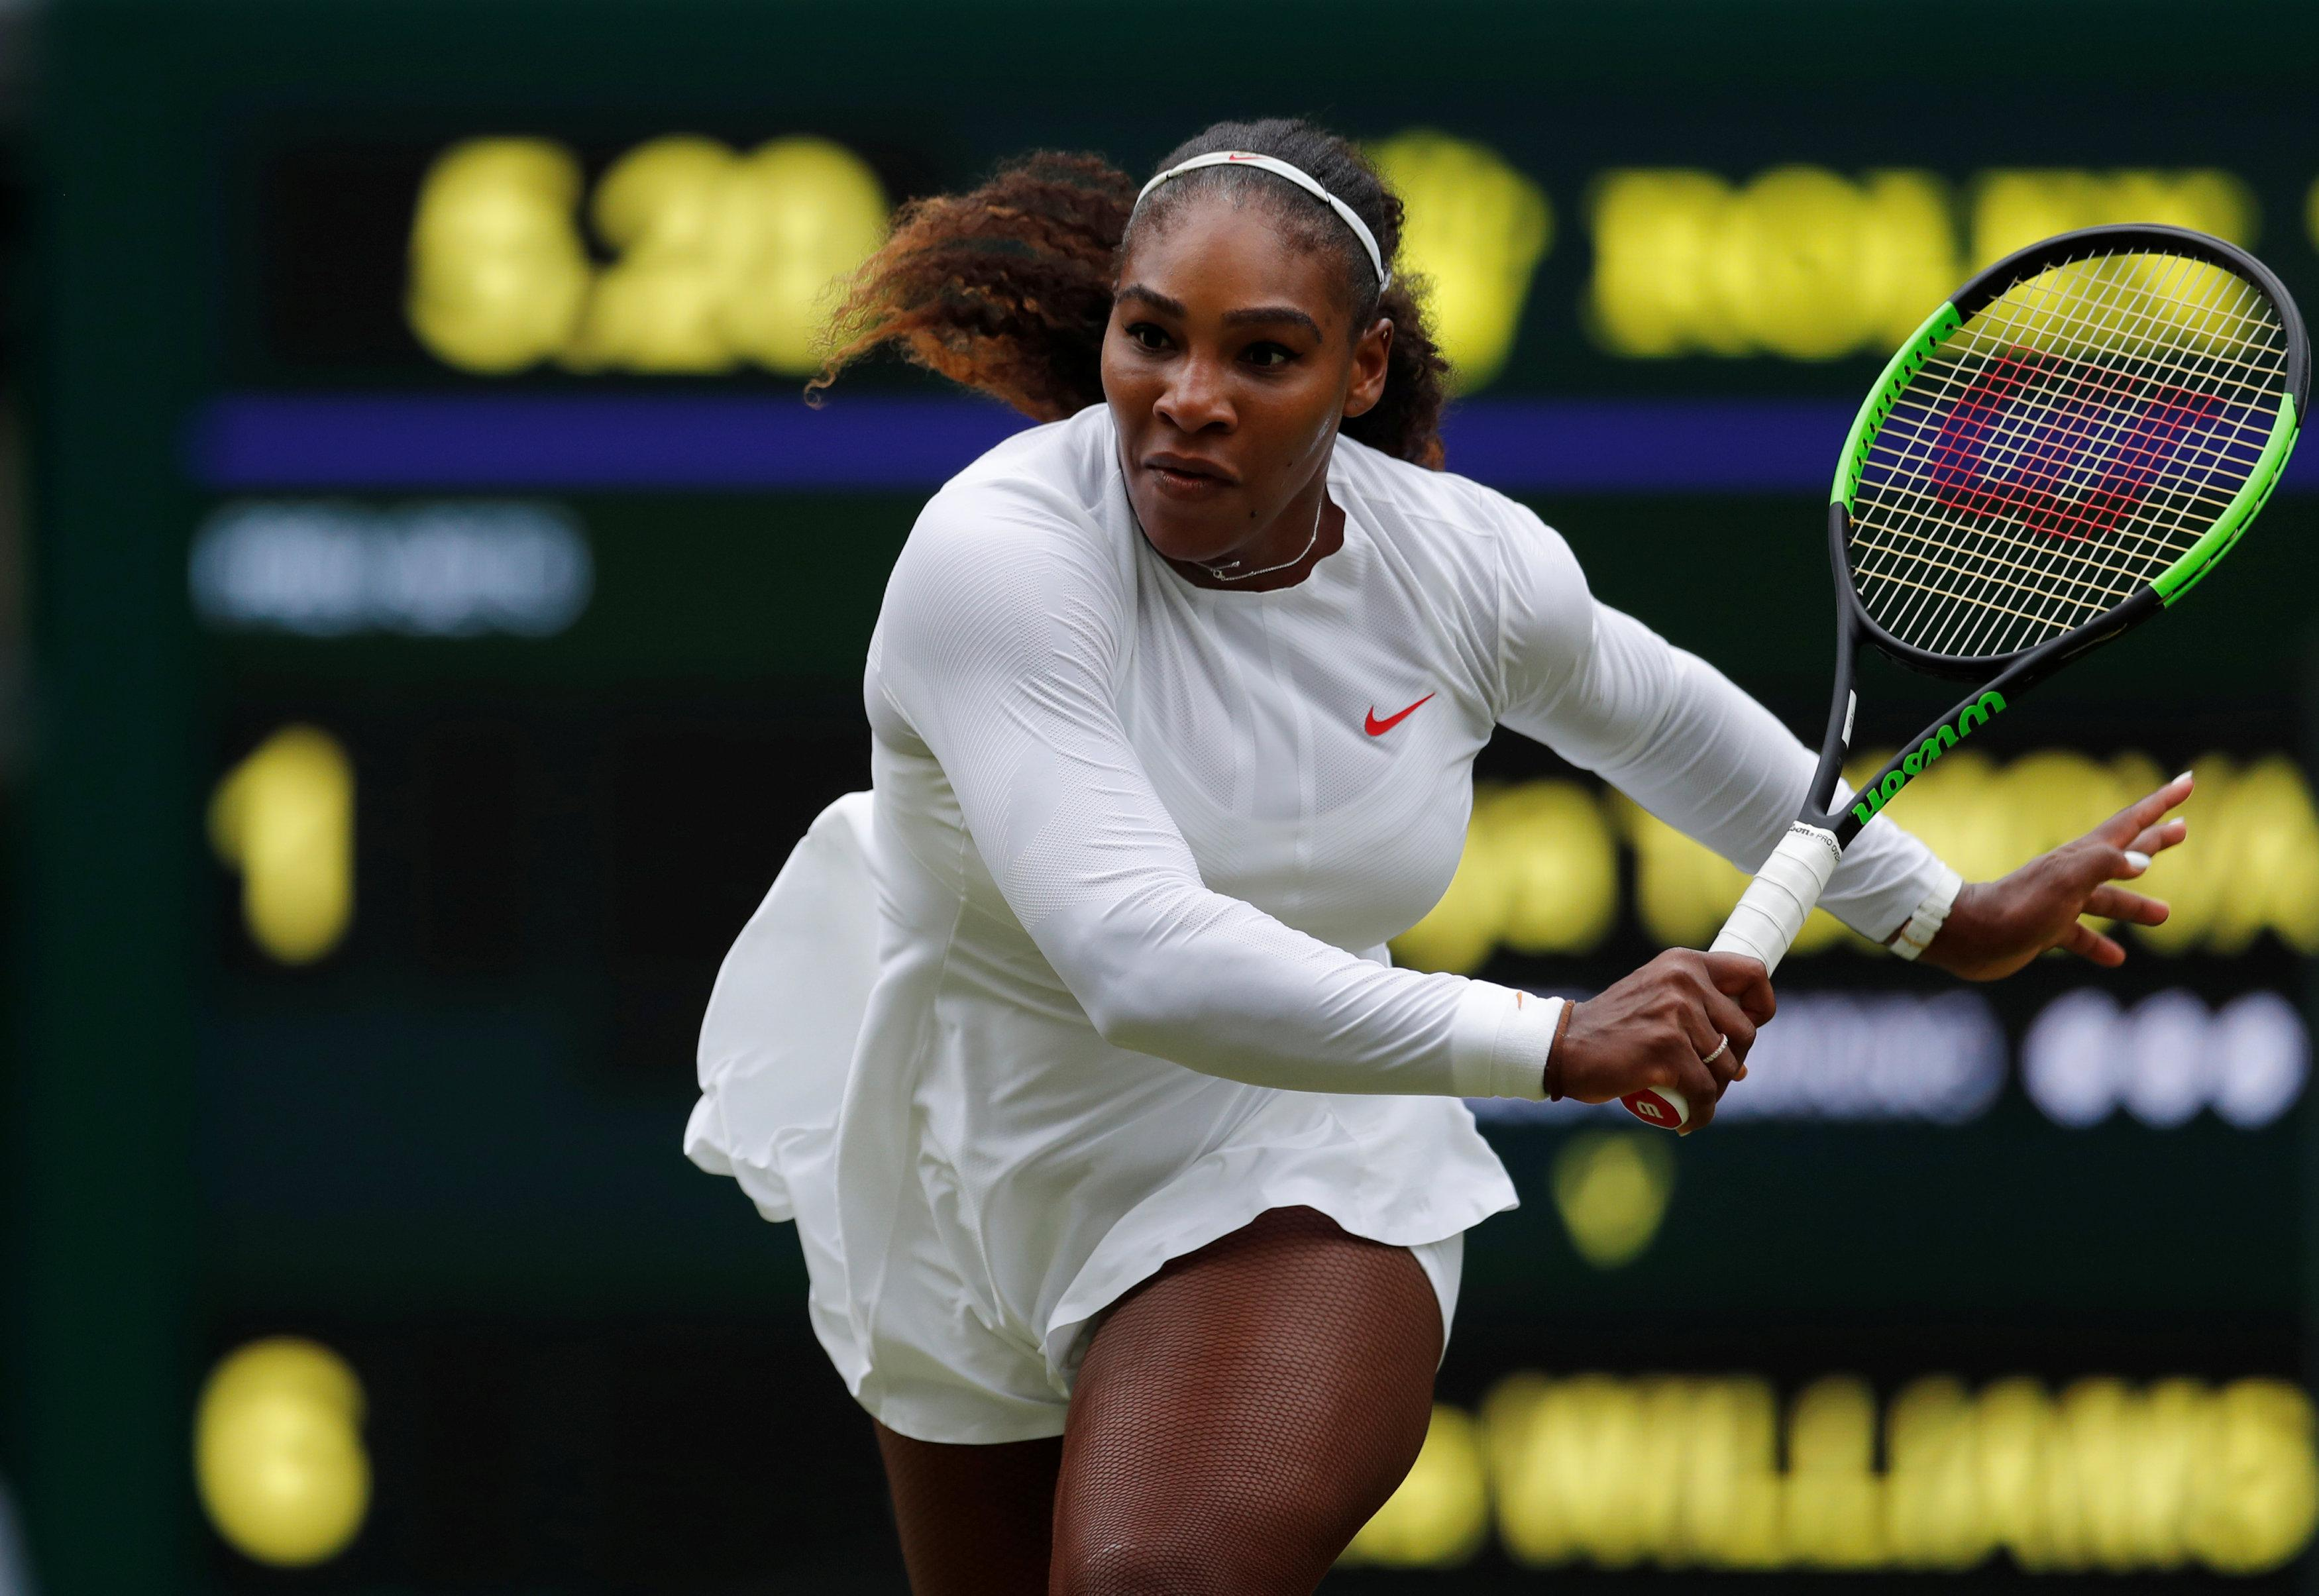 Serena Williams remains one of the favourites to lift the trophy